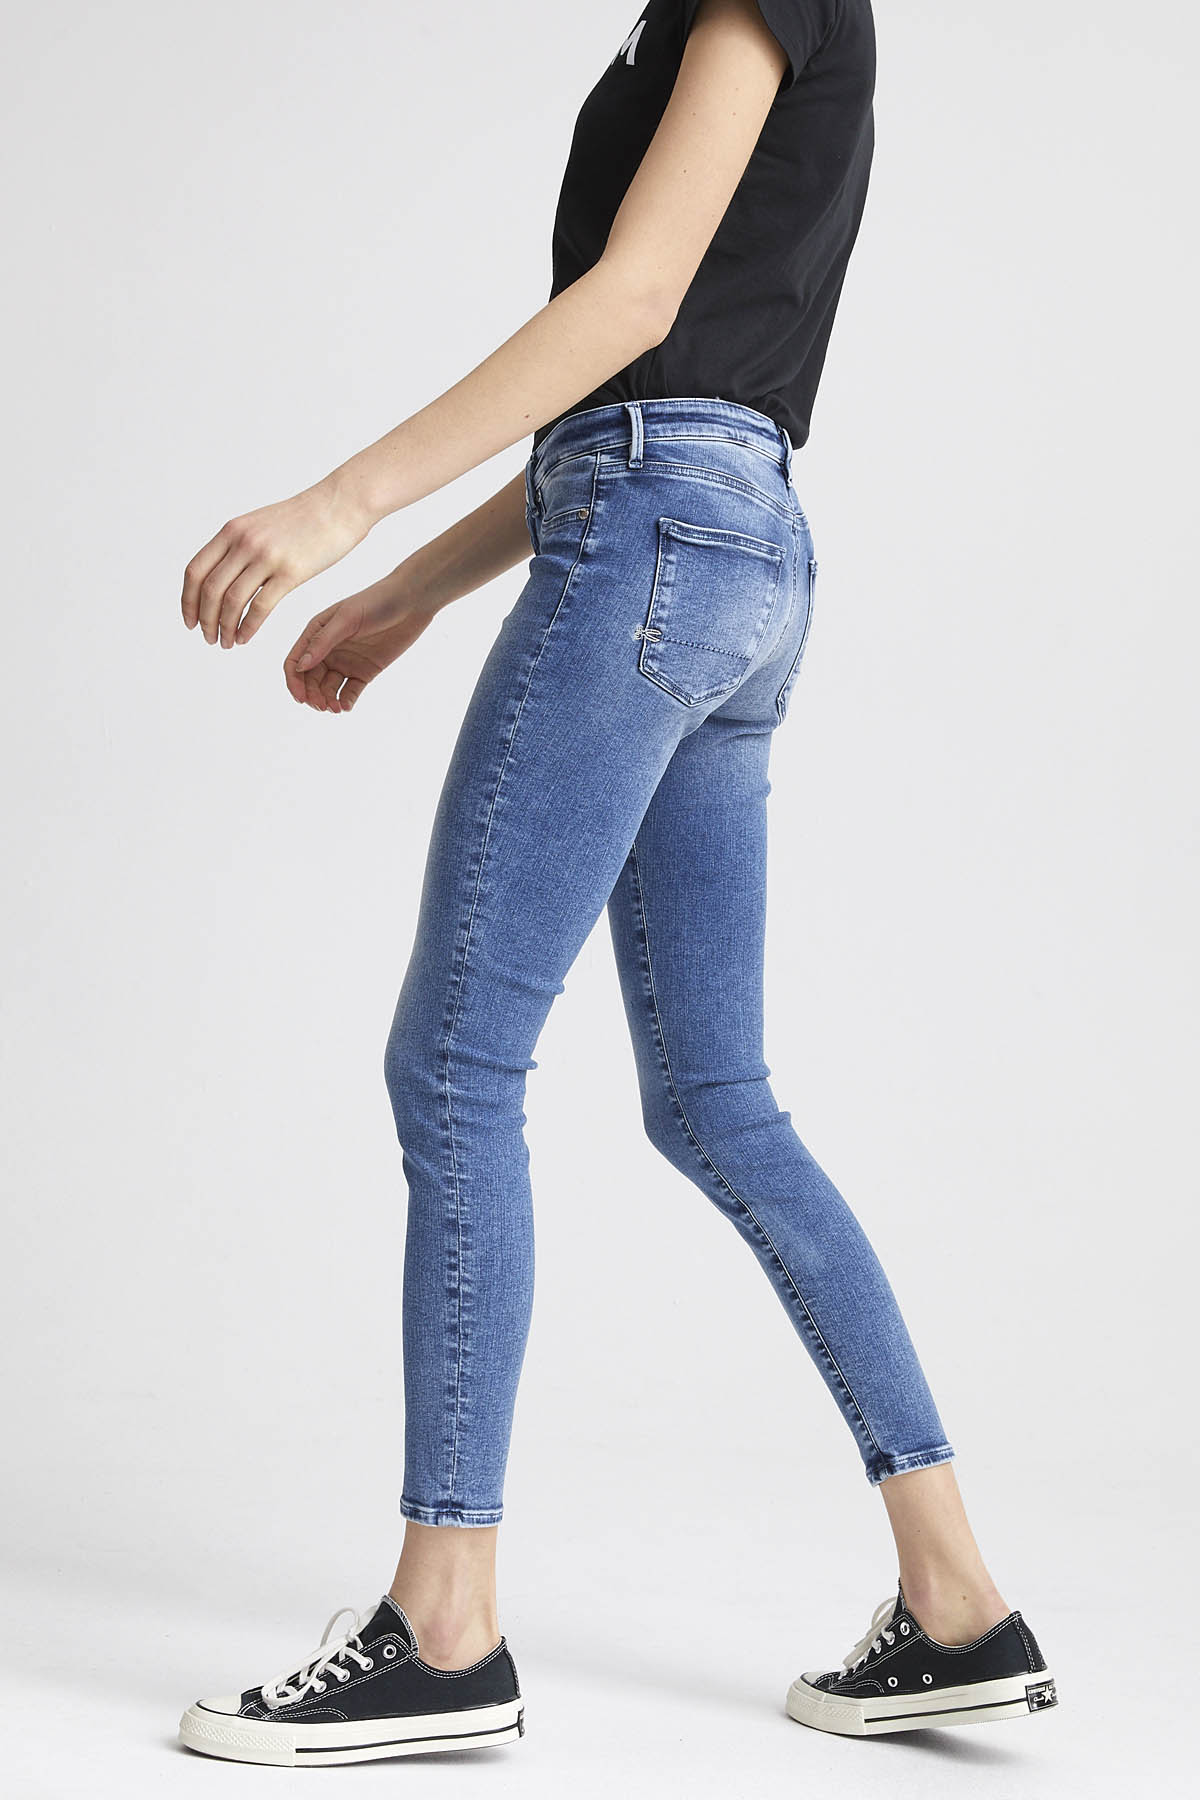 Spray - Super Tight Fit Jeans - Back